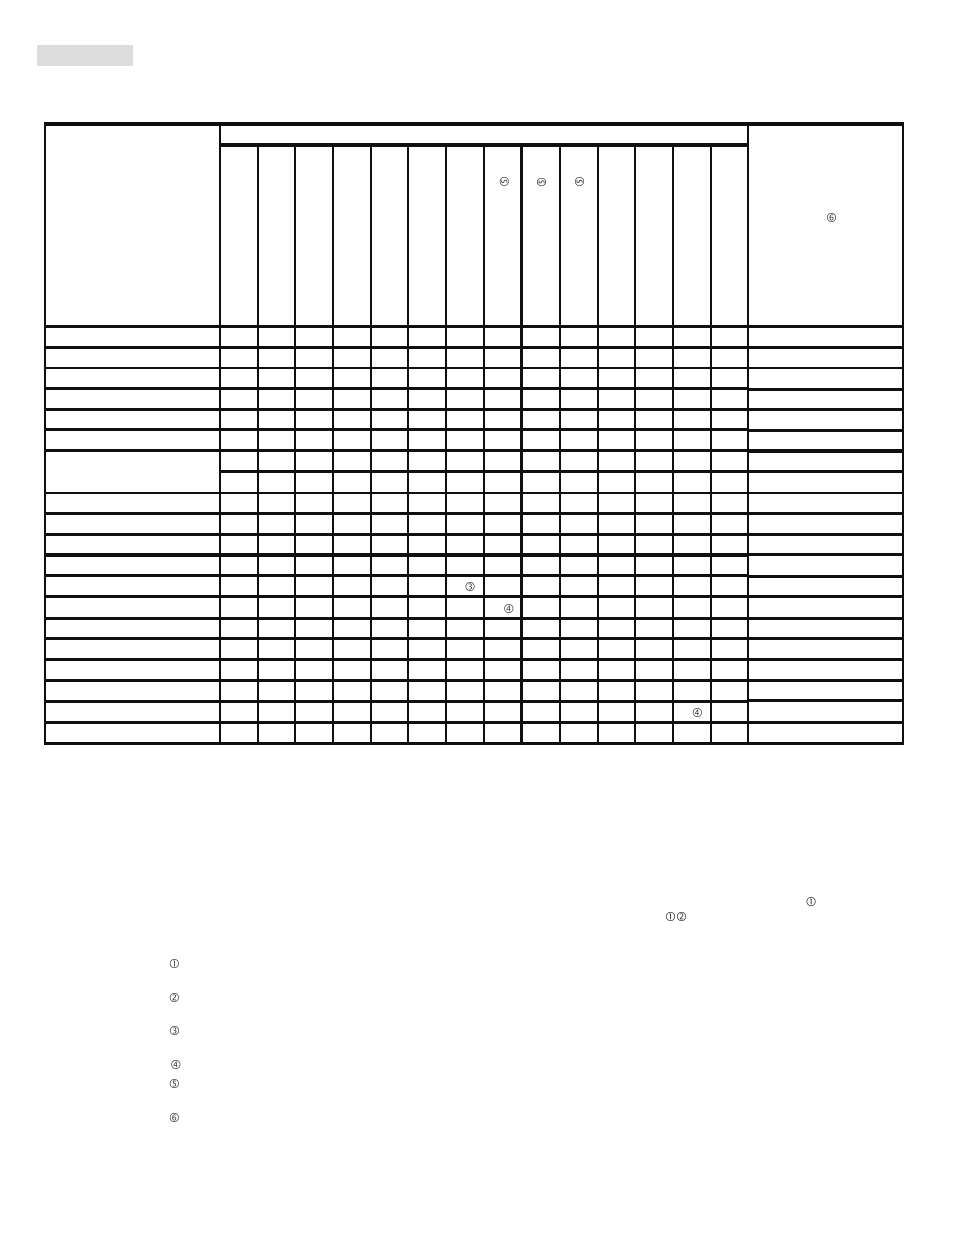 hight resolution of rockwell automation 1492 1771 to 1756 i o swing arm conversion system user manual page 14 16